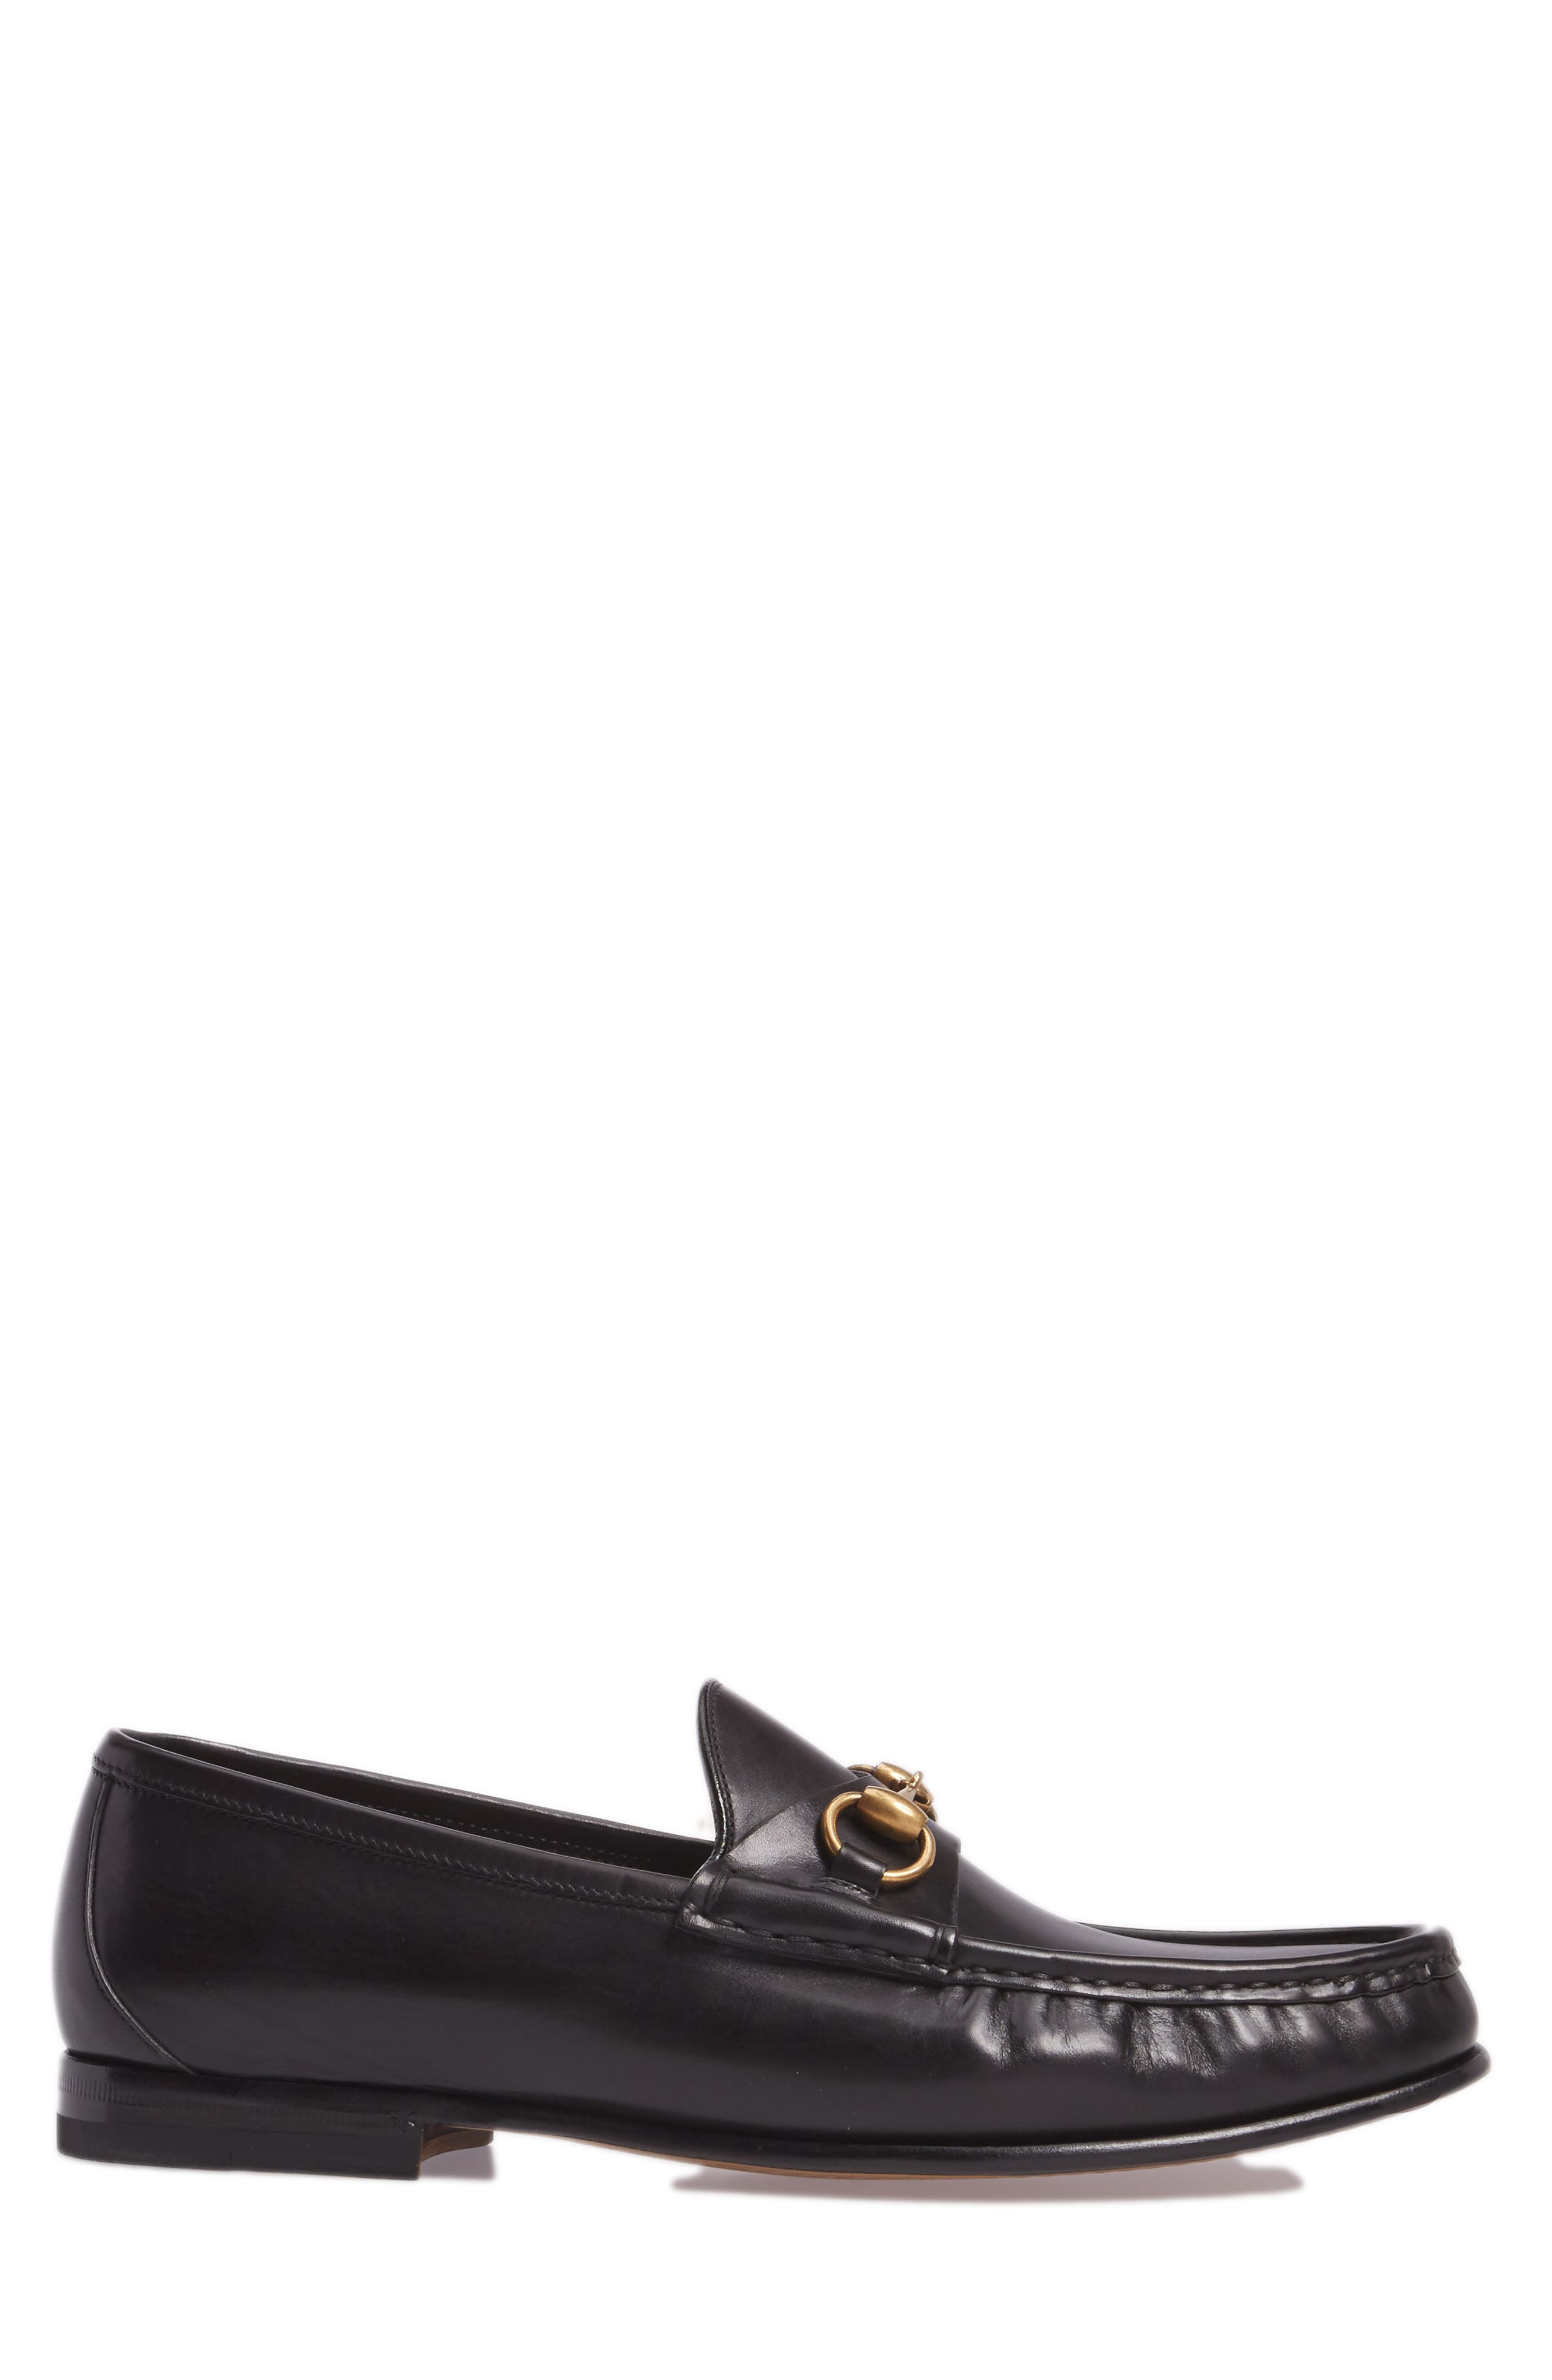 'Roos' Bit Loafer,                             Alternate thumbnail 3, color,                             Nero